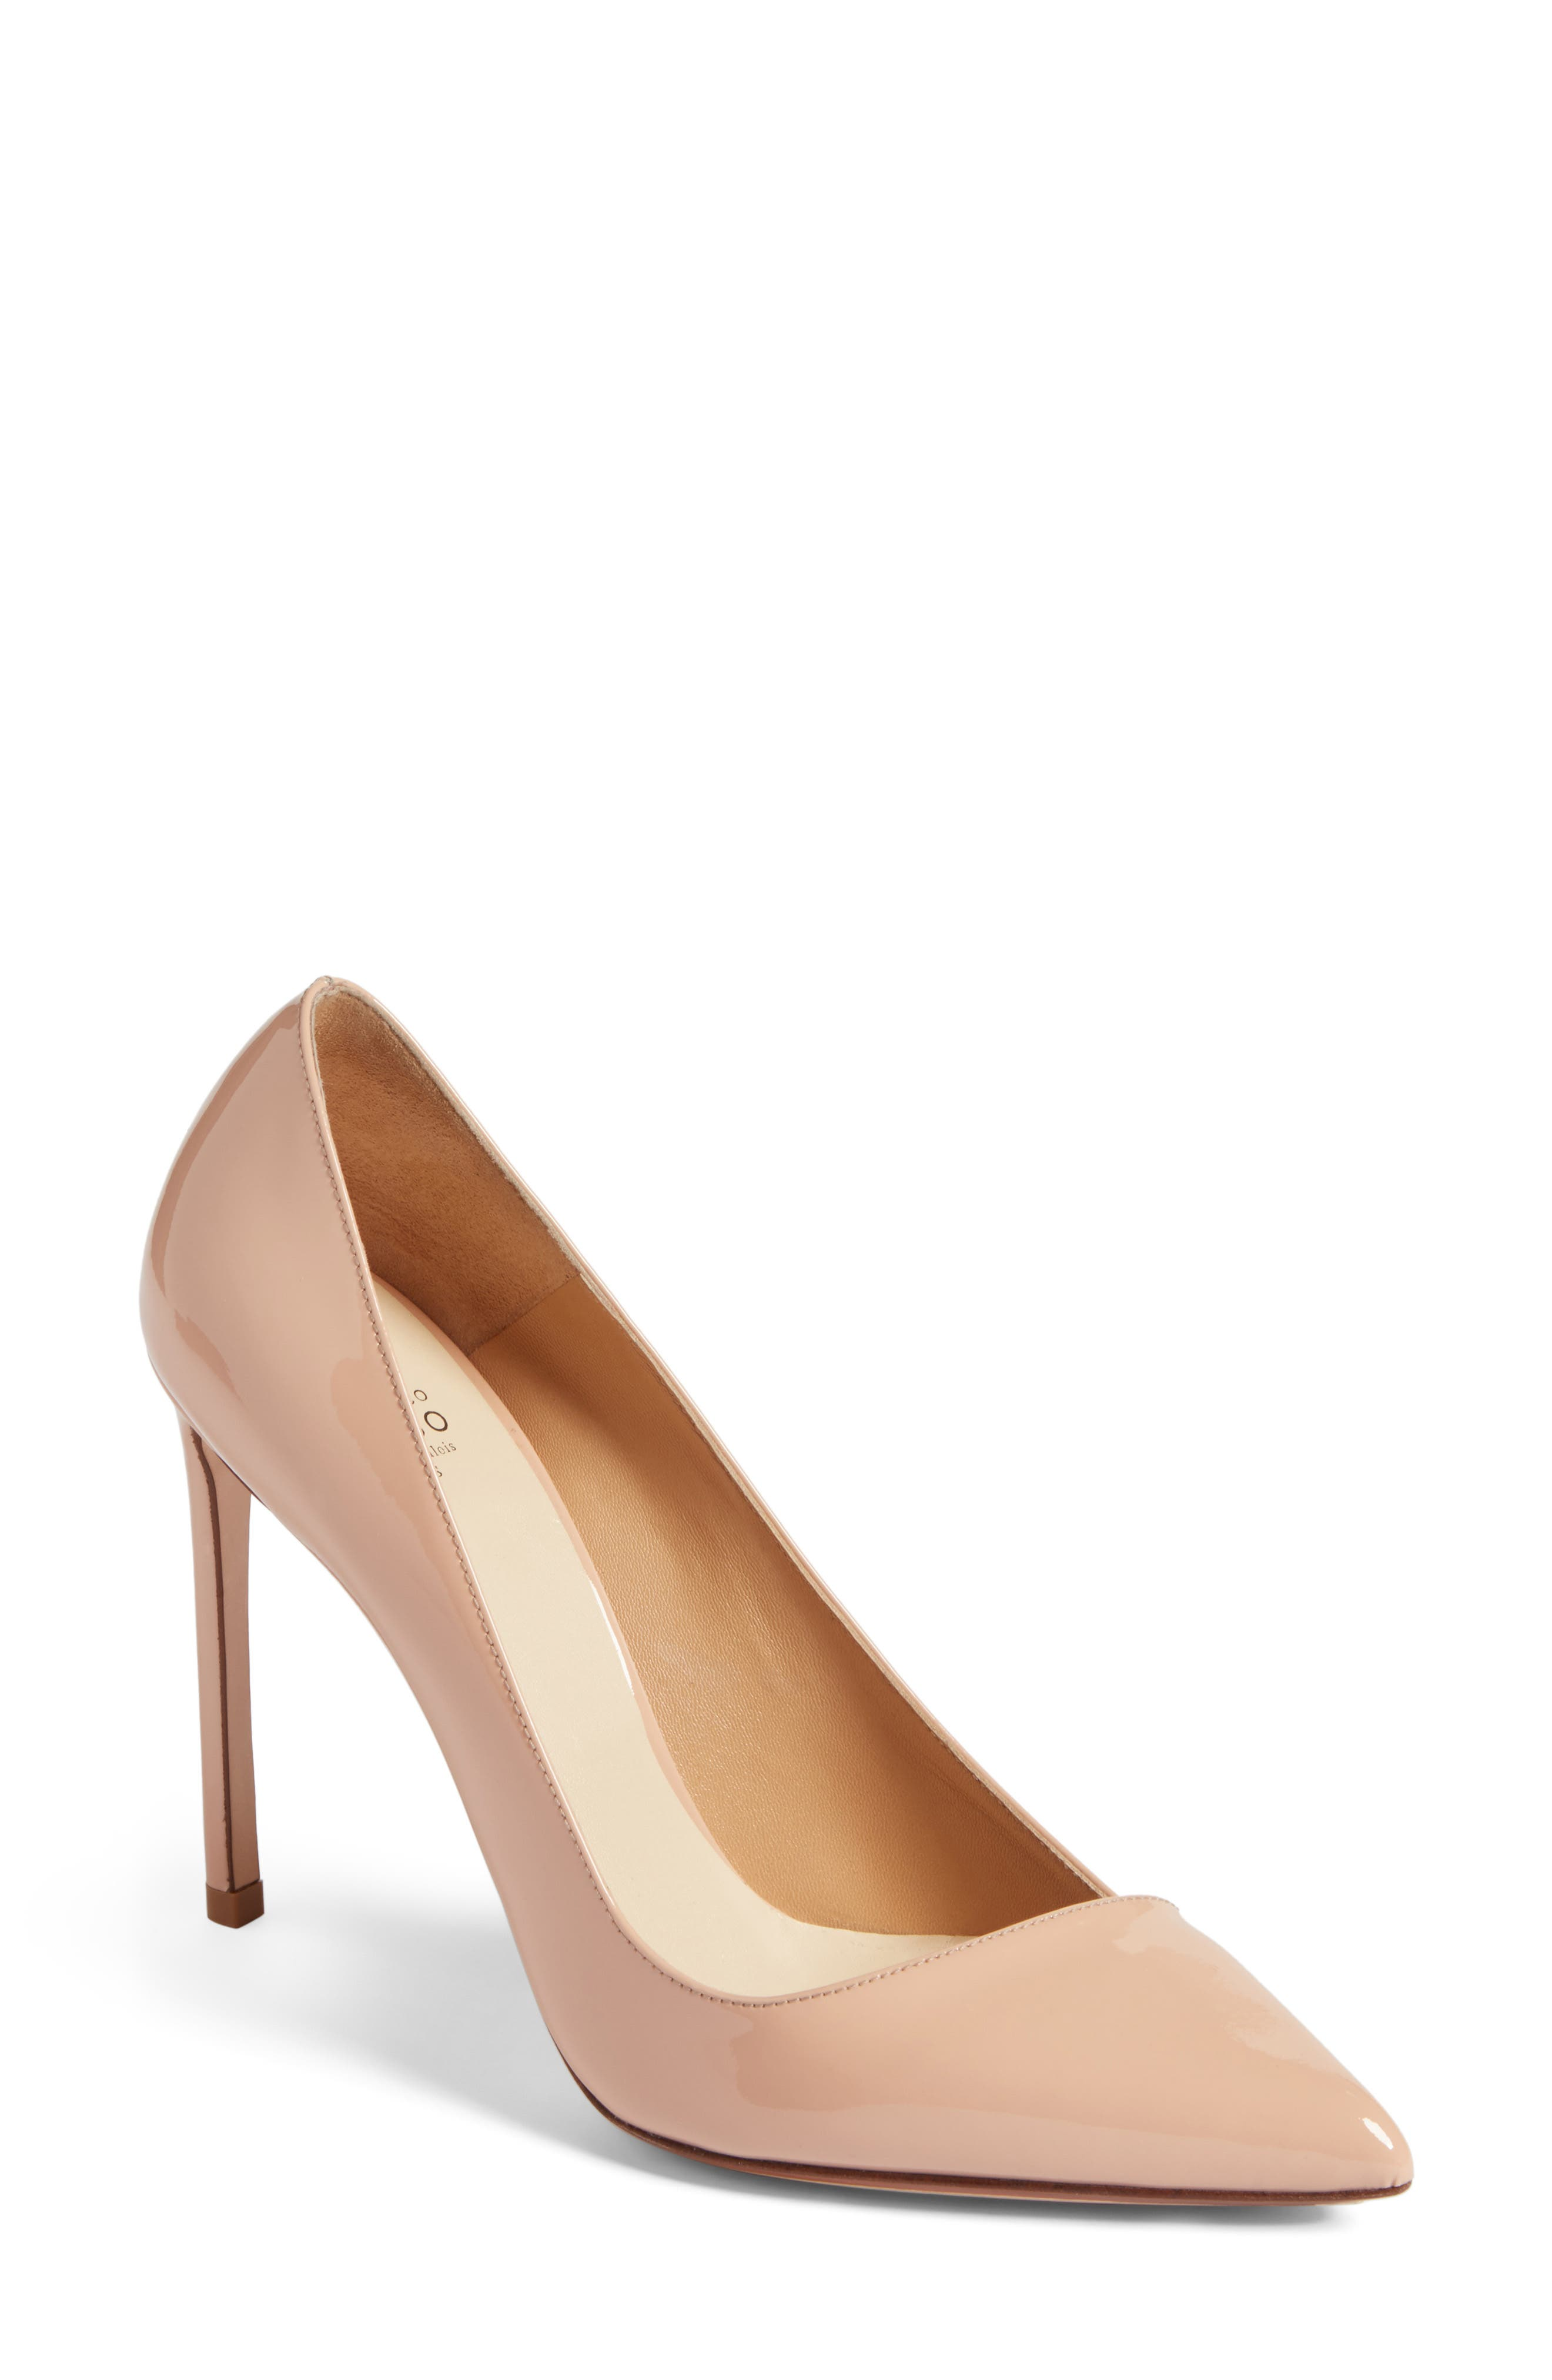 Pointy Toe Pump,                         Main,                         color, Beige Leather